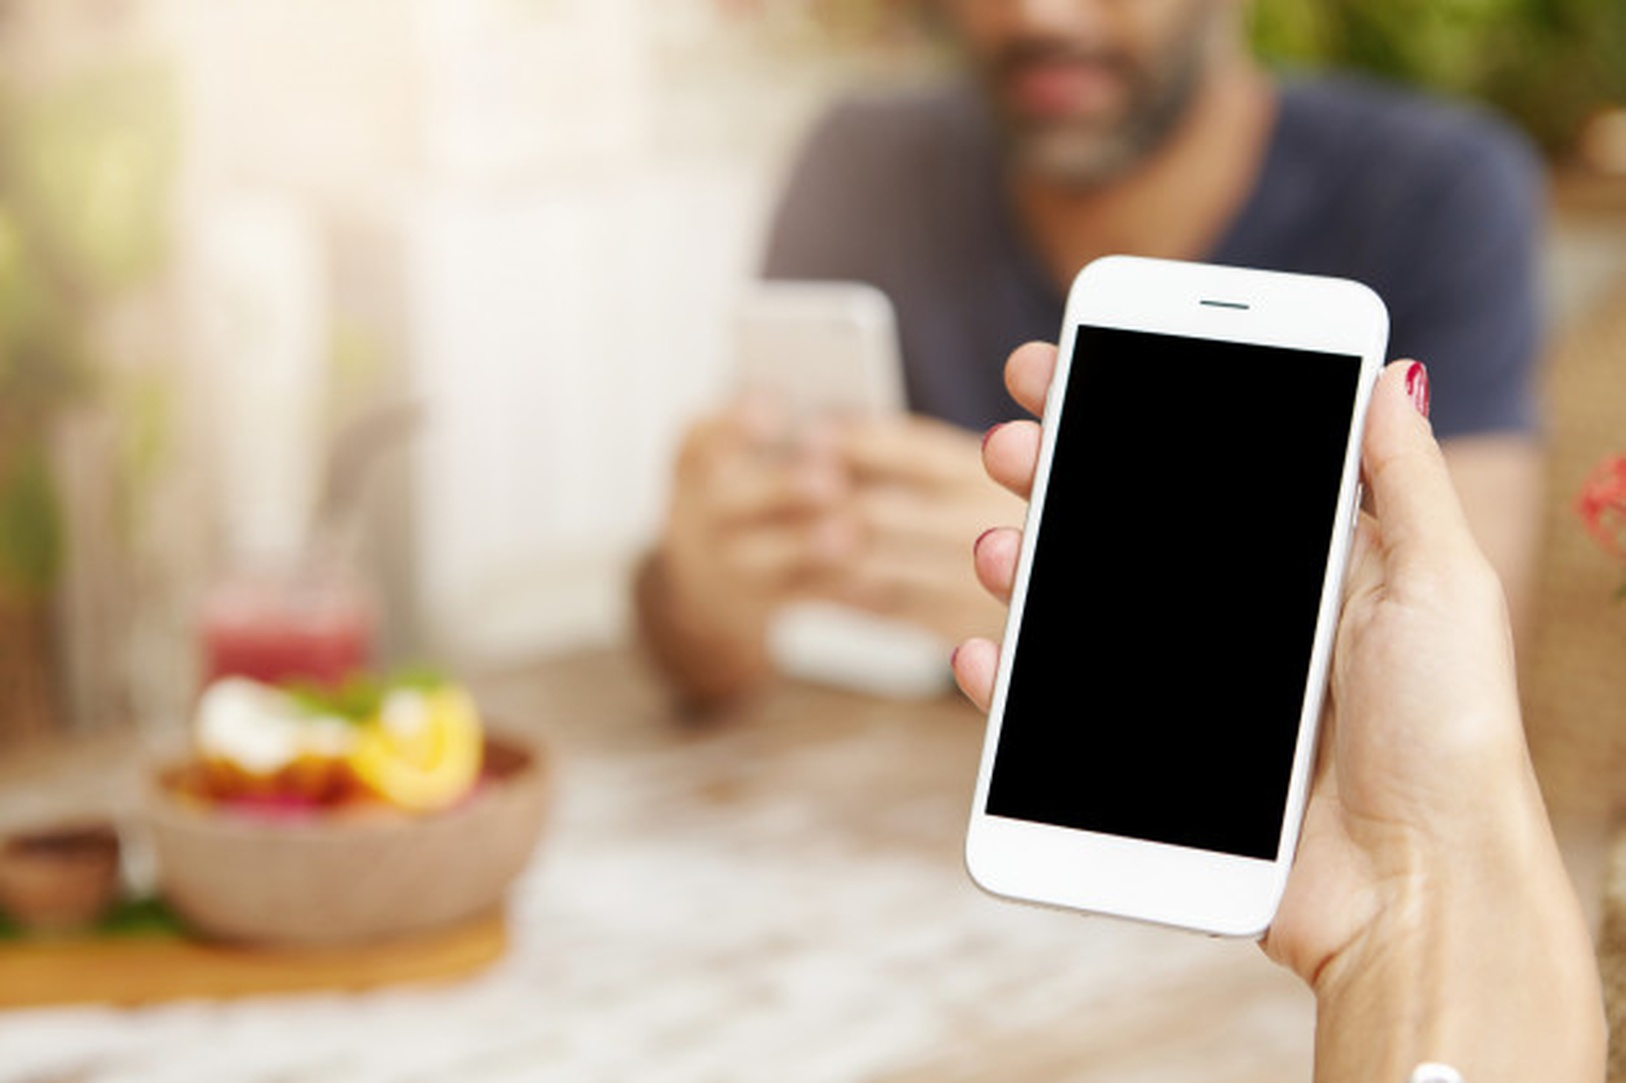 3 Things You Need to Do While Selling Used Mobile Phones